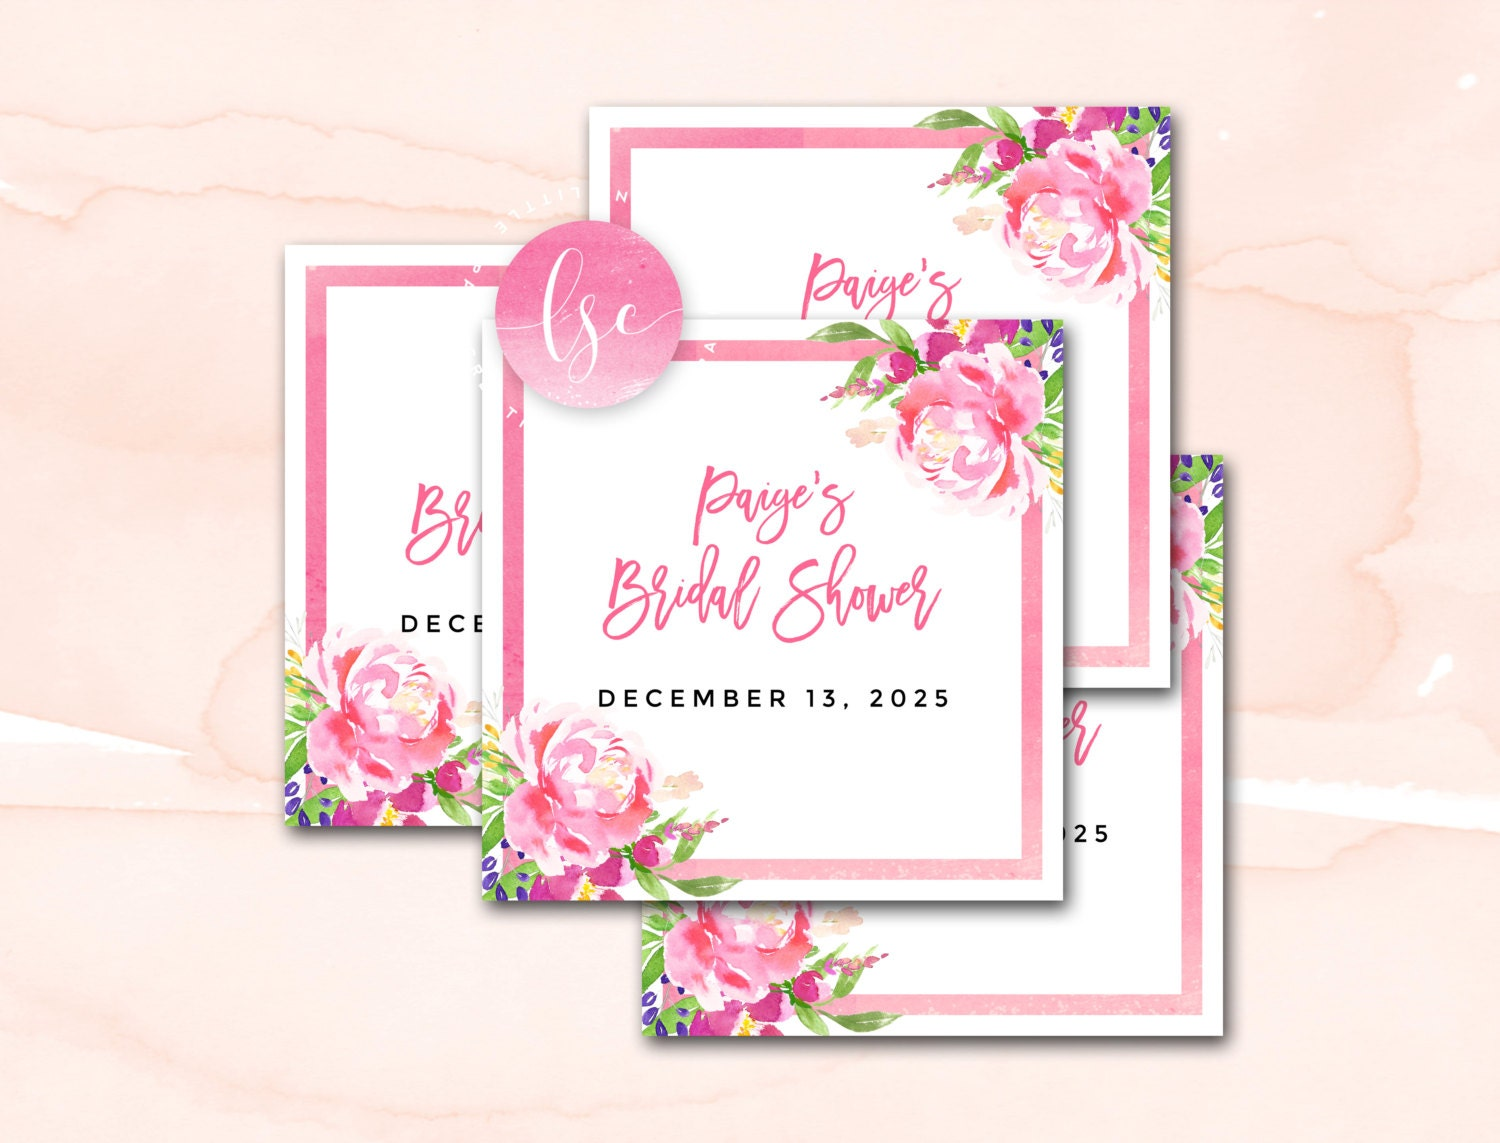 Free Printable Wedding Gift Tags: Bridal Shower Favor Tags Printable Favor Tags Wedding Shower